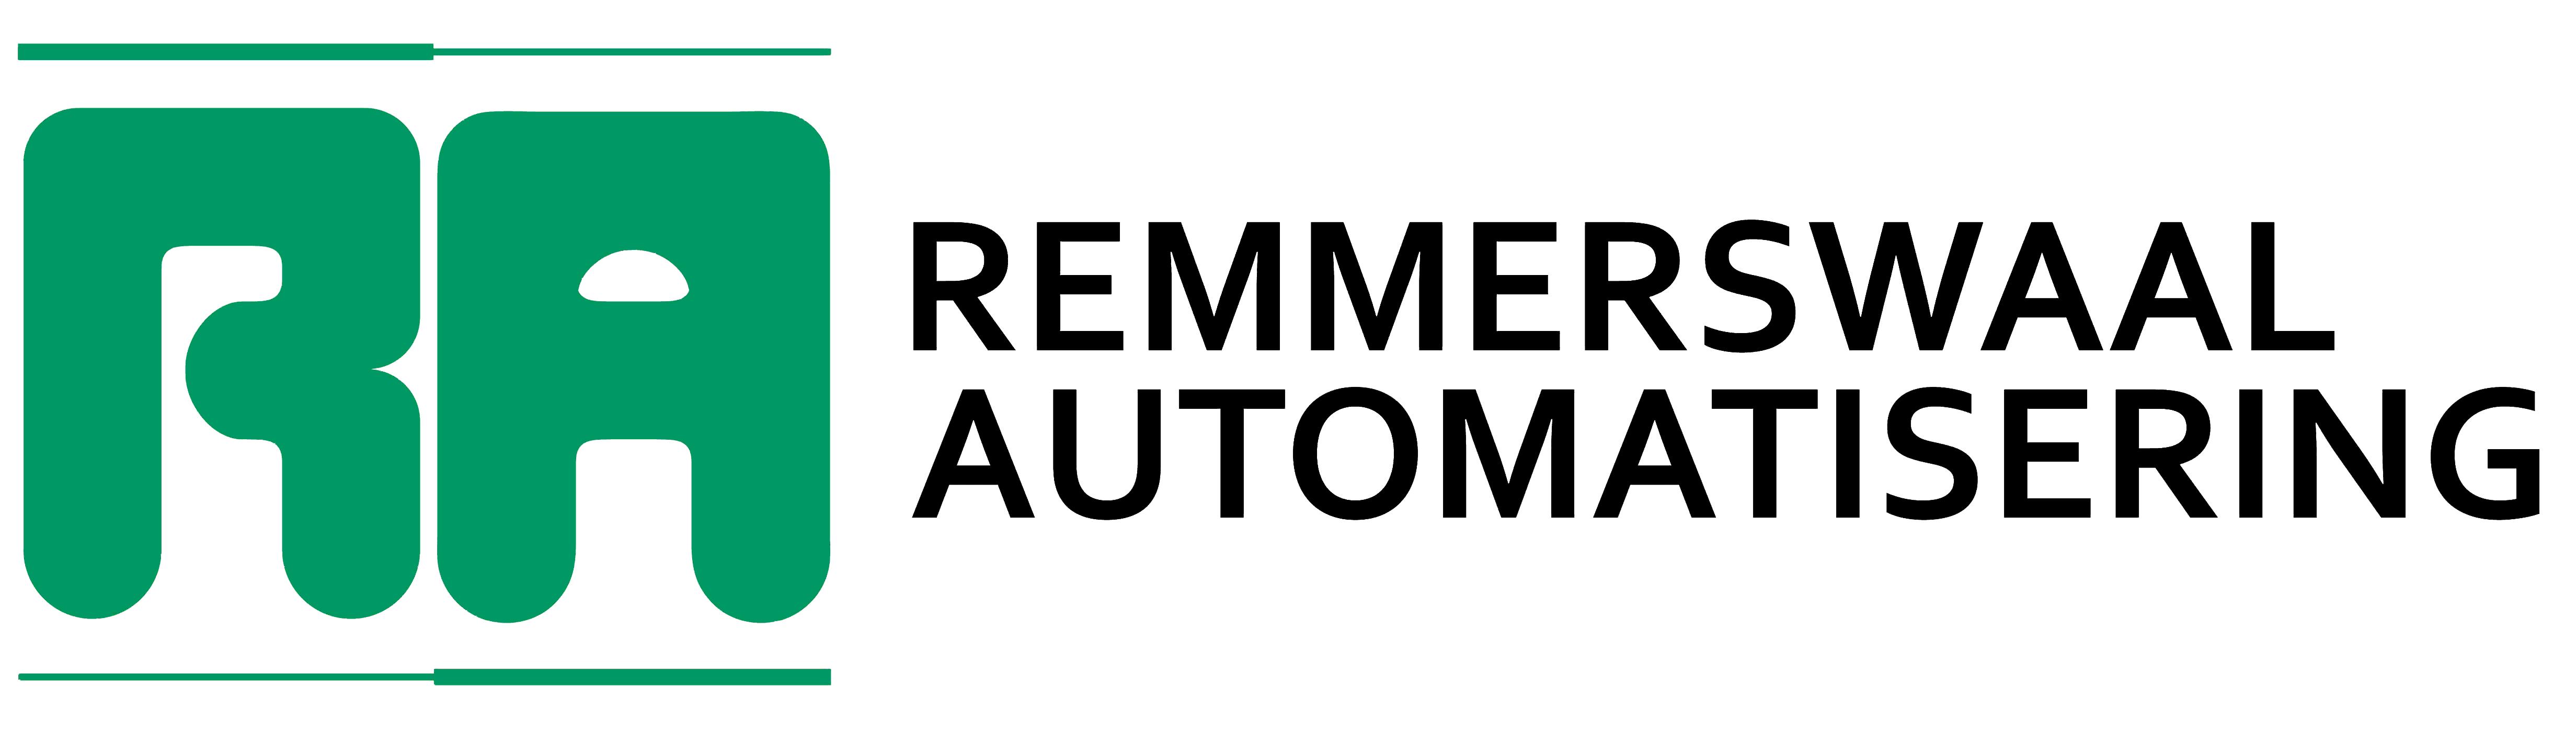 Remmerswaal Automatisering